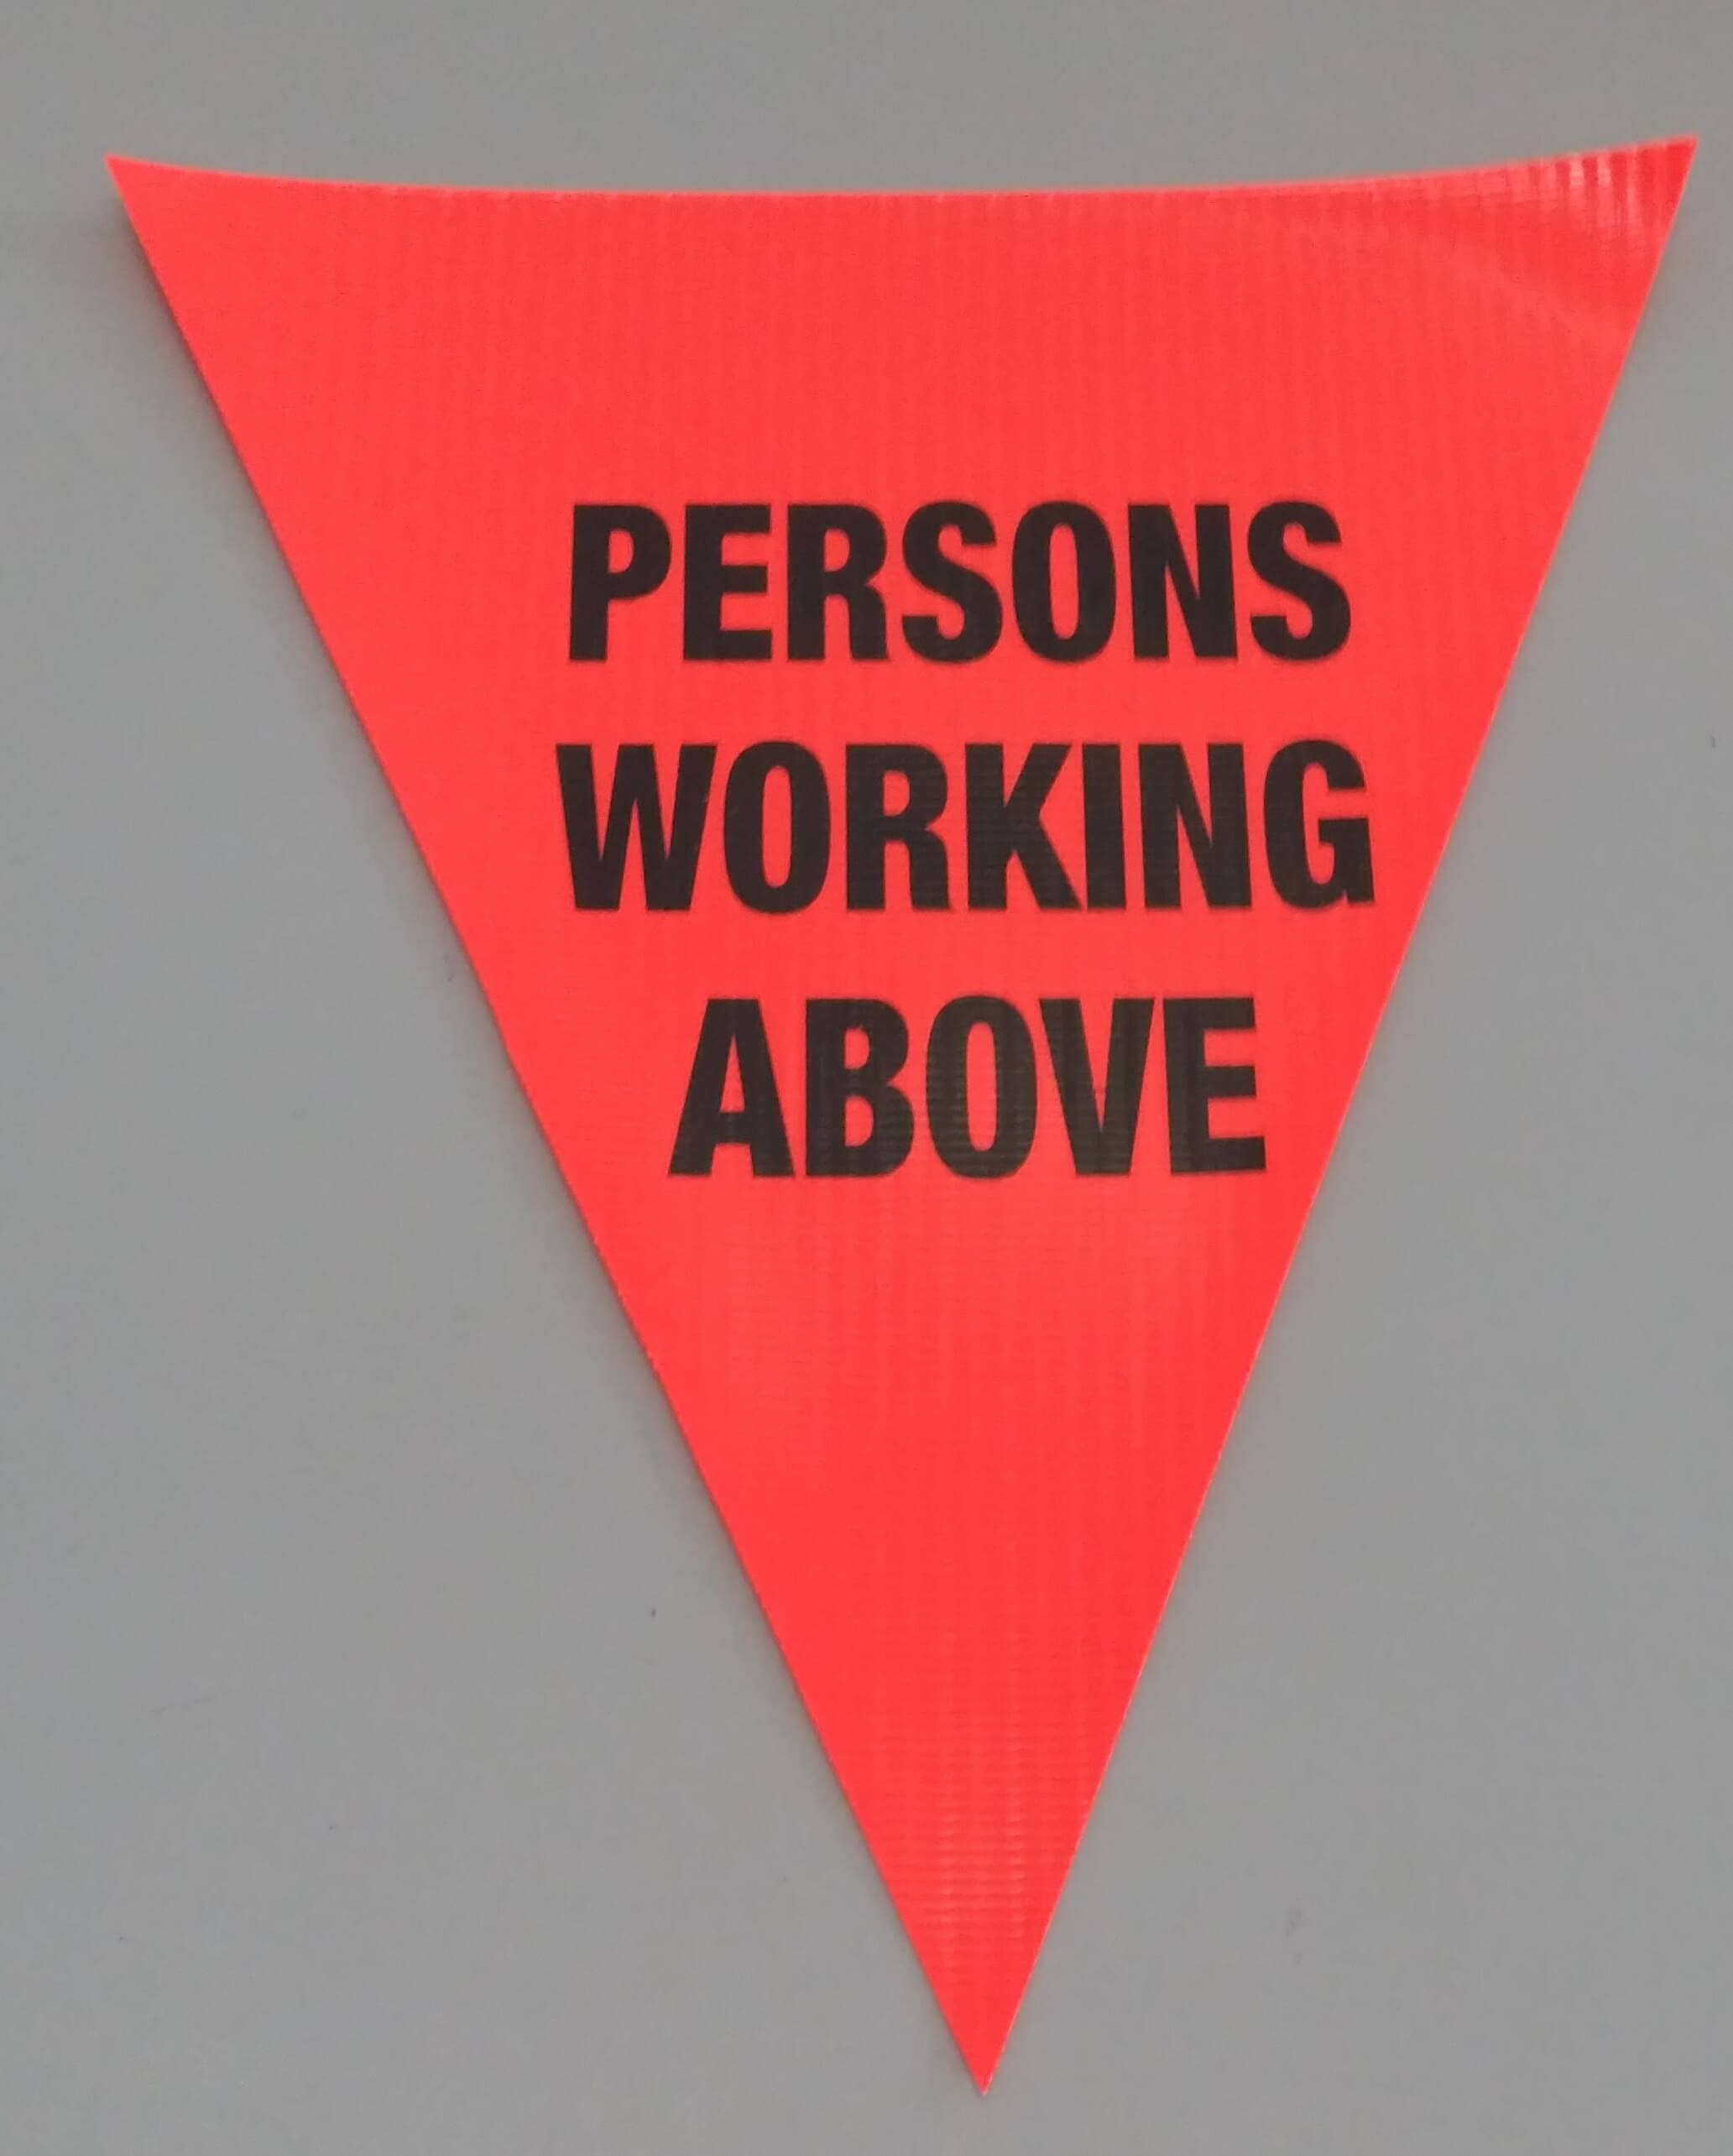 Persons Working Above (orange)